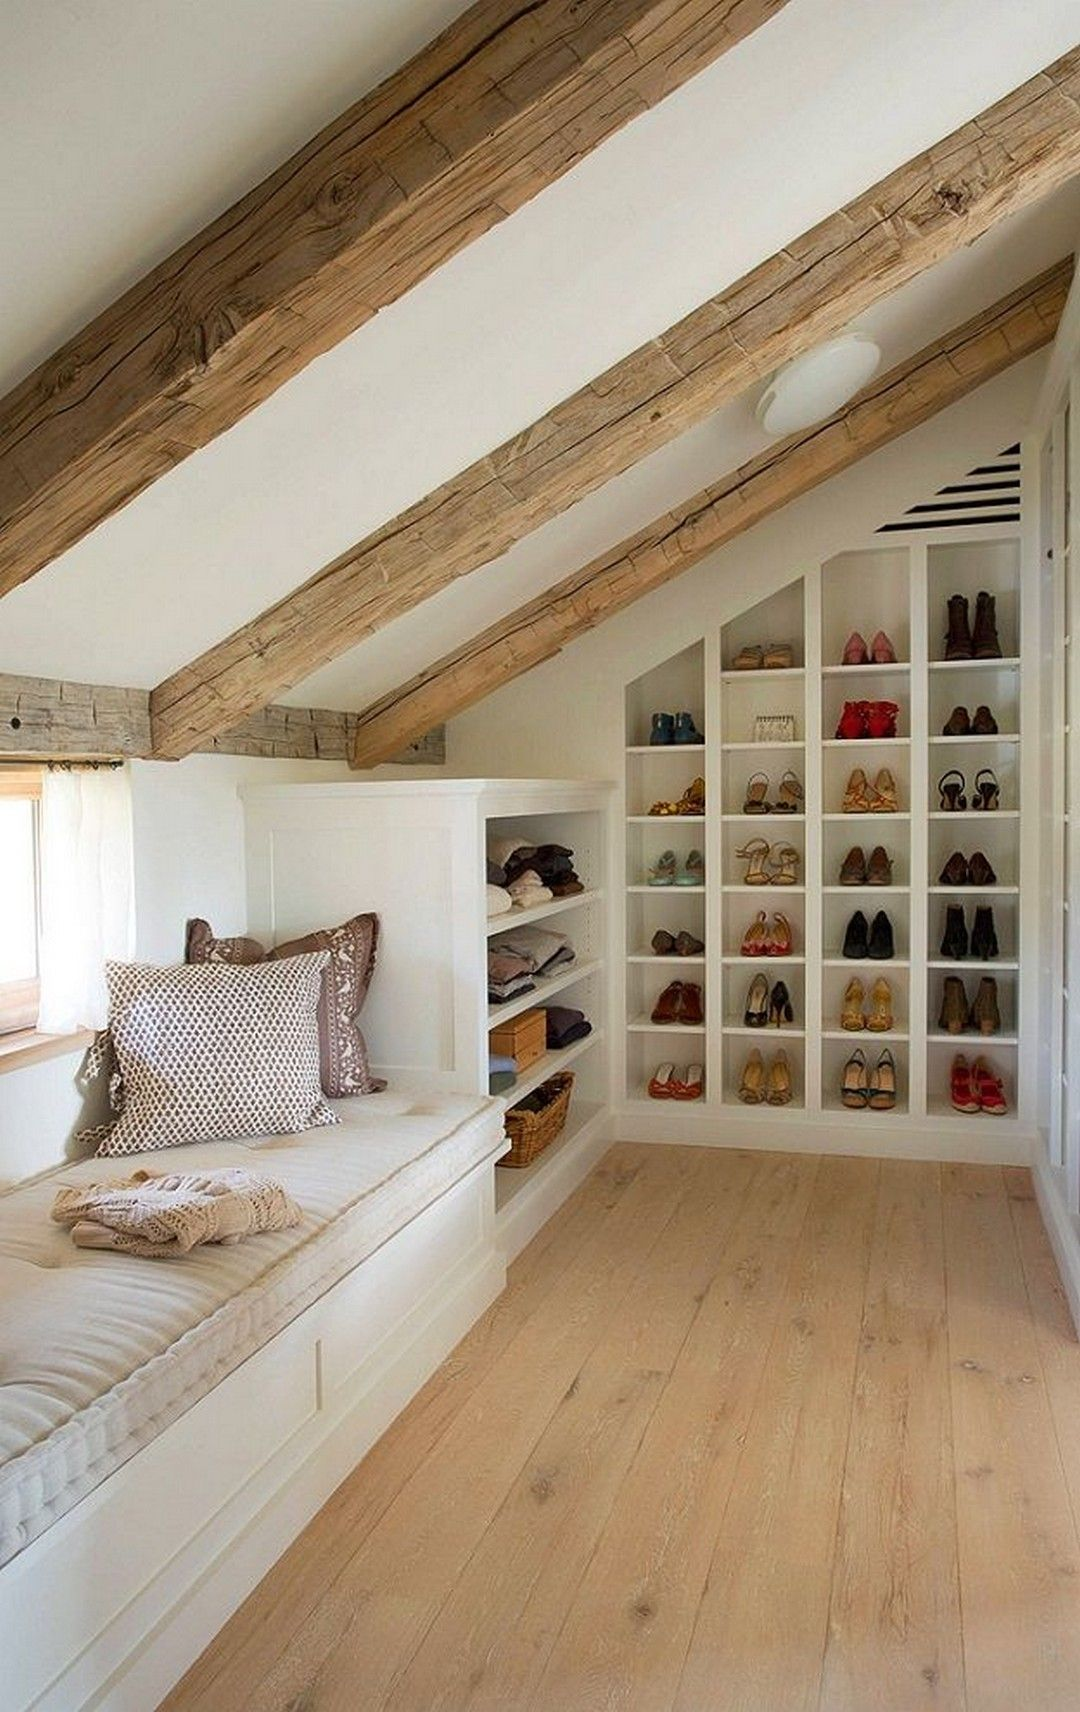 Attic rooms Awesome Attic Master Bedroom with